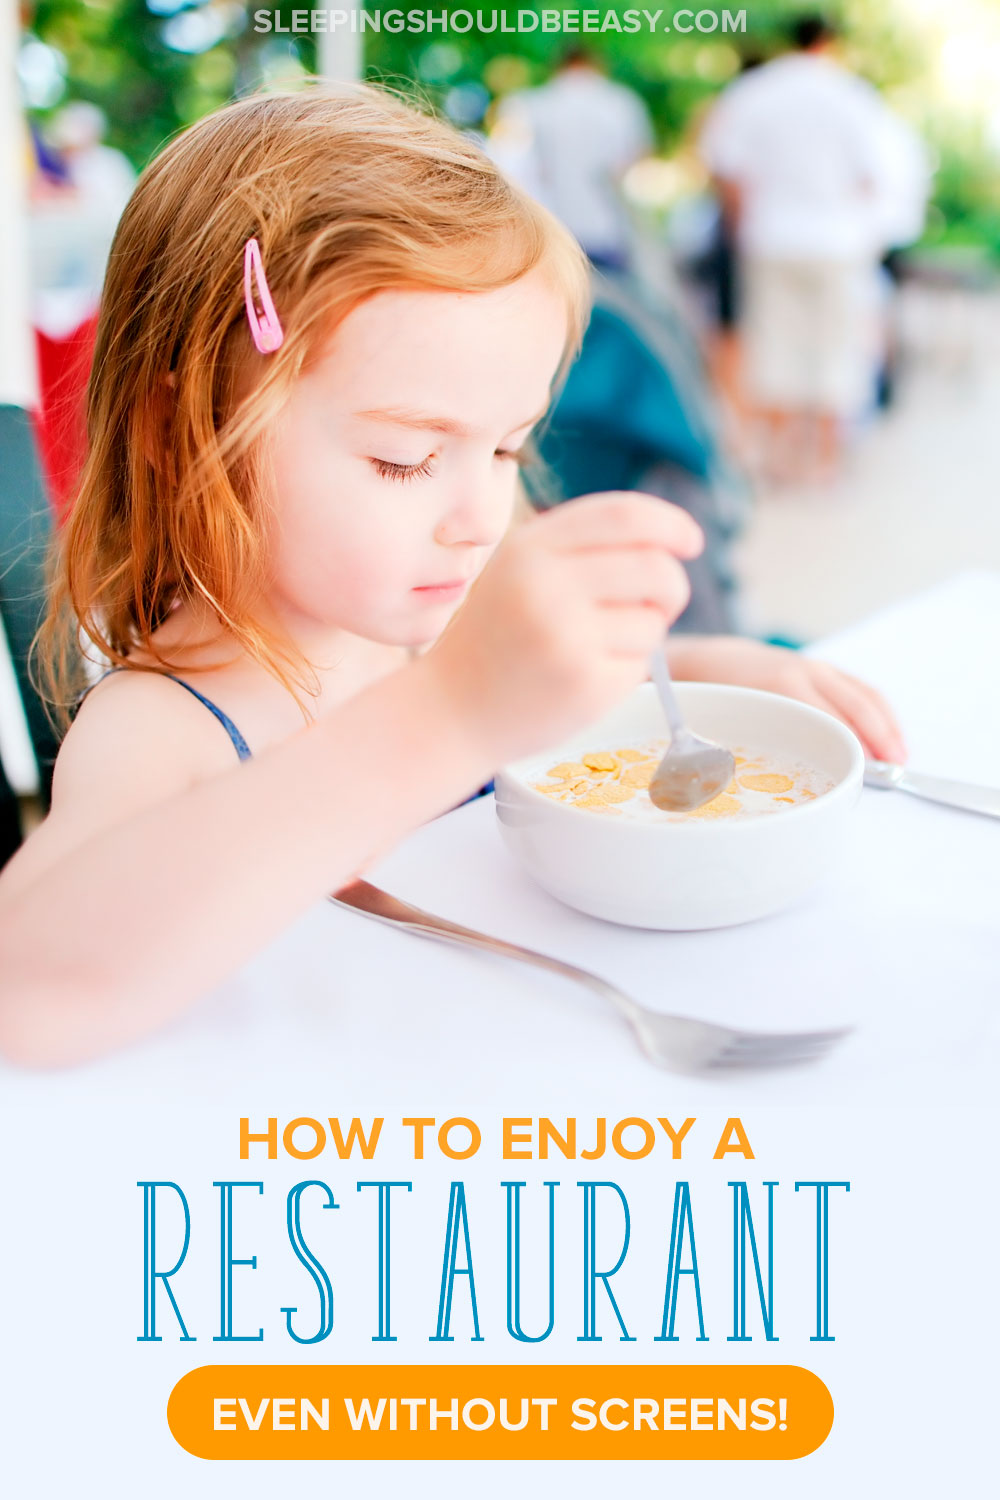 Eating at a restaurant is supposed to be a treat, but you come home more stressed. Learn ways to enjoy a restaurant meal with kids, even without screens, snacks or distractions.